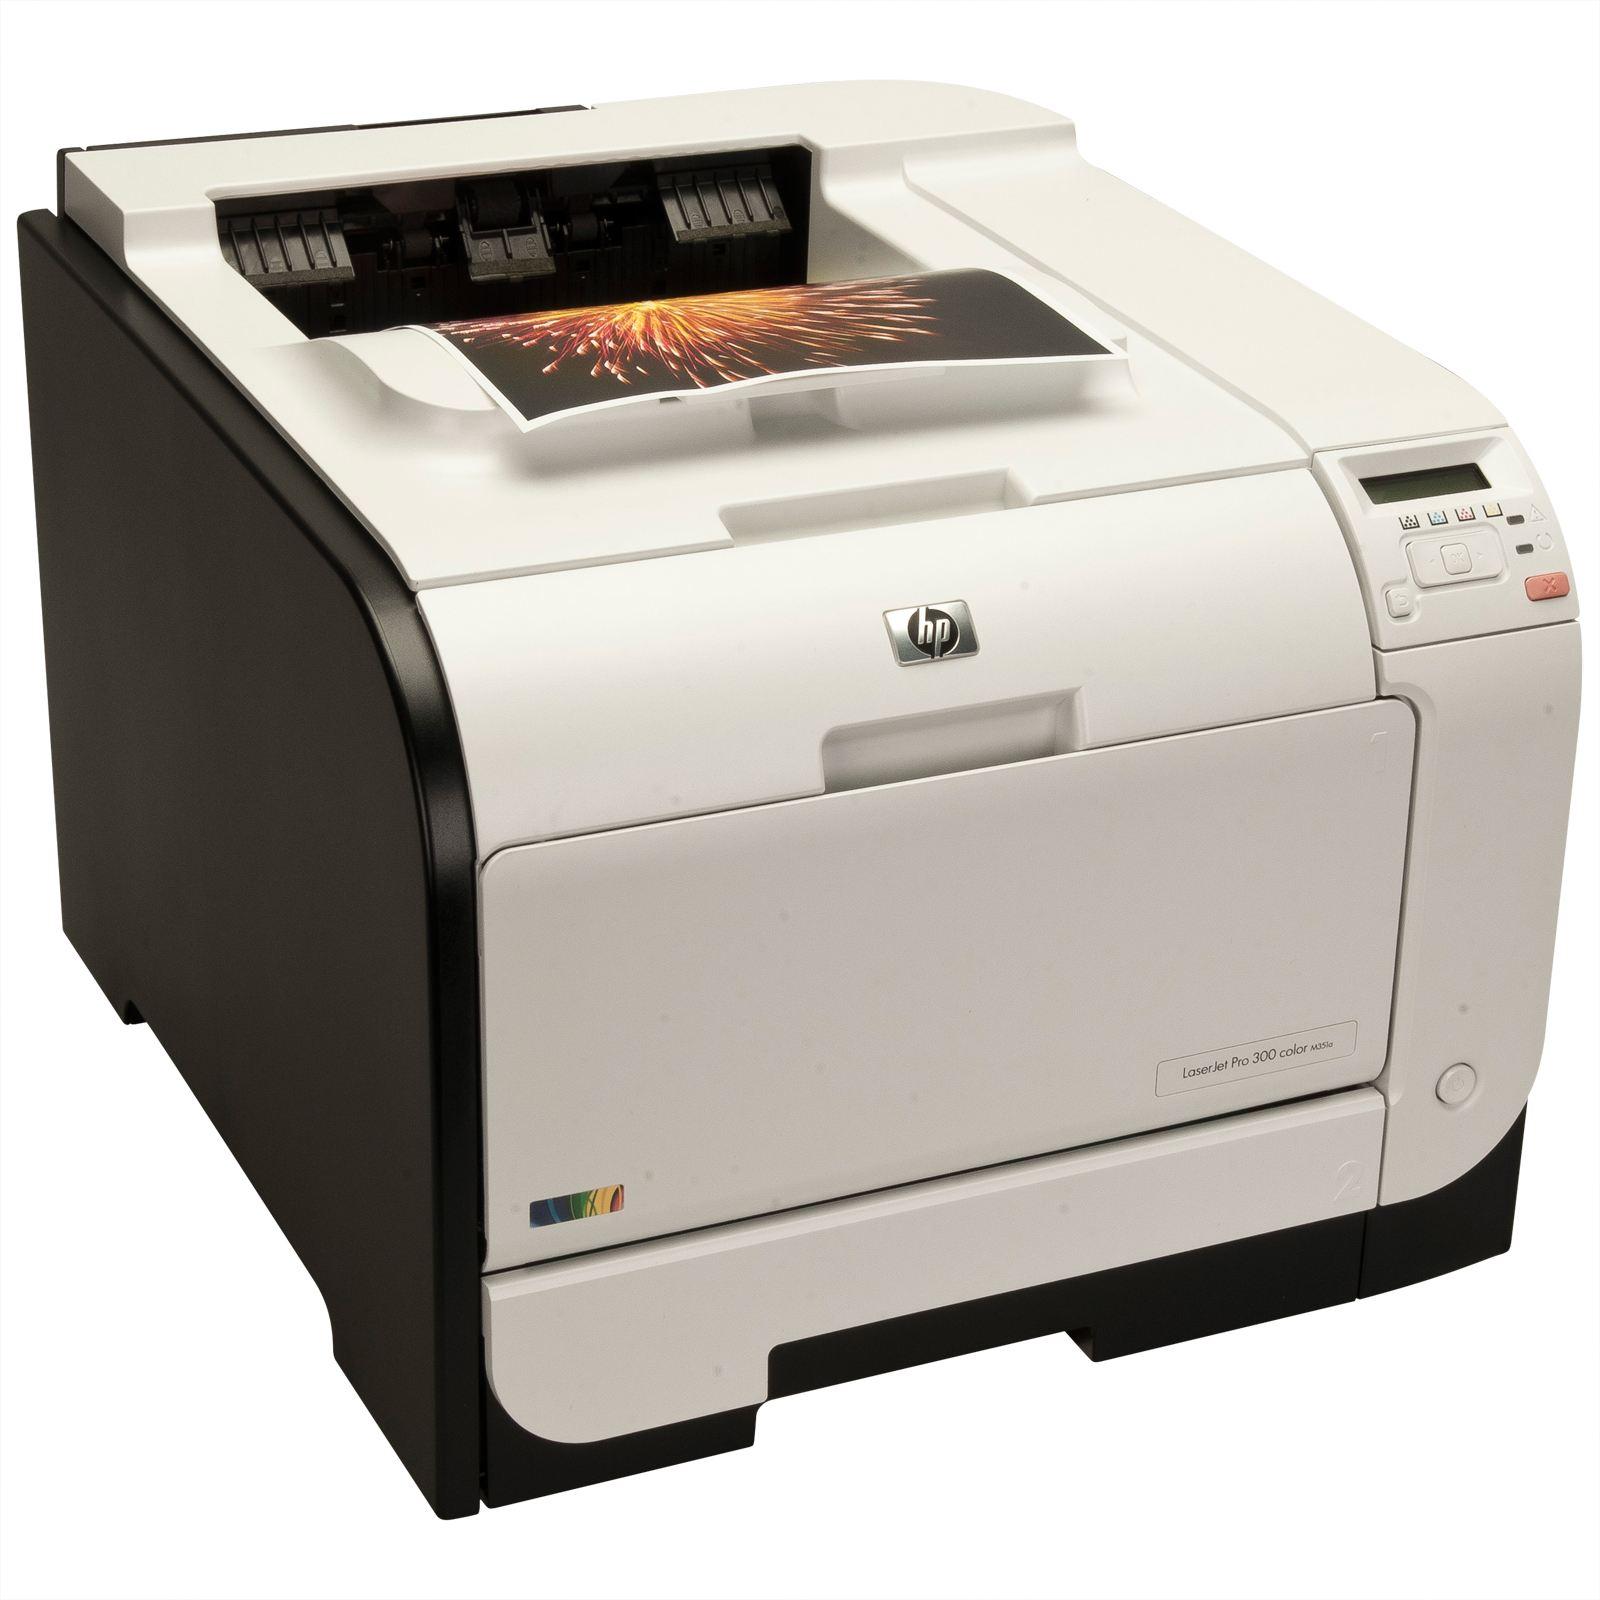 Принтер HP LaserJet Pro 300 color Printer M351a